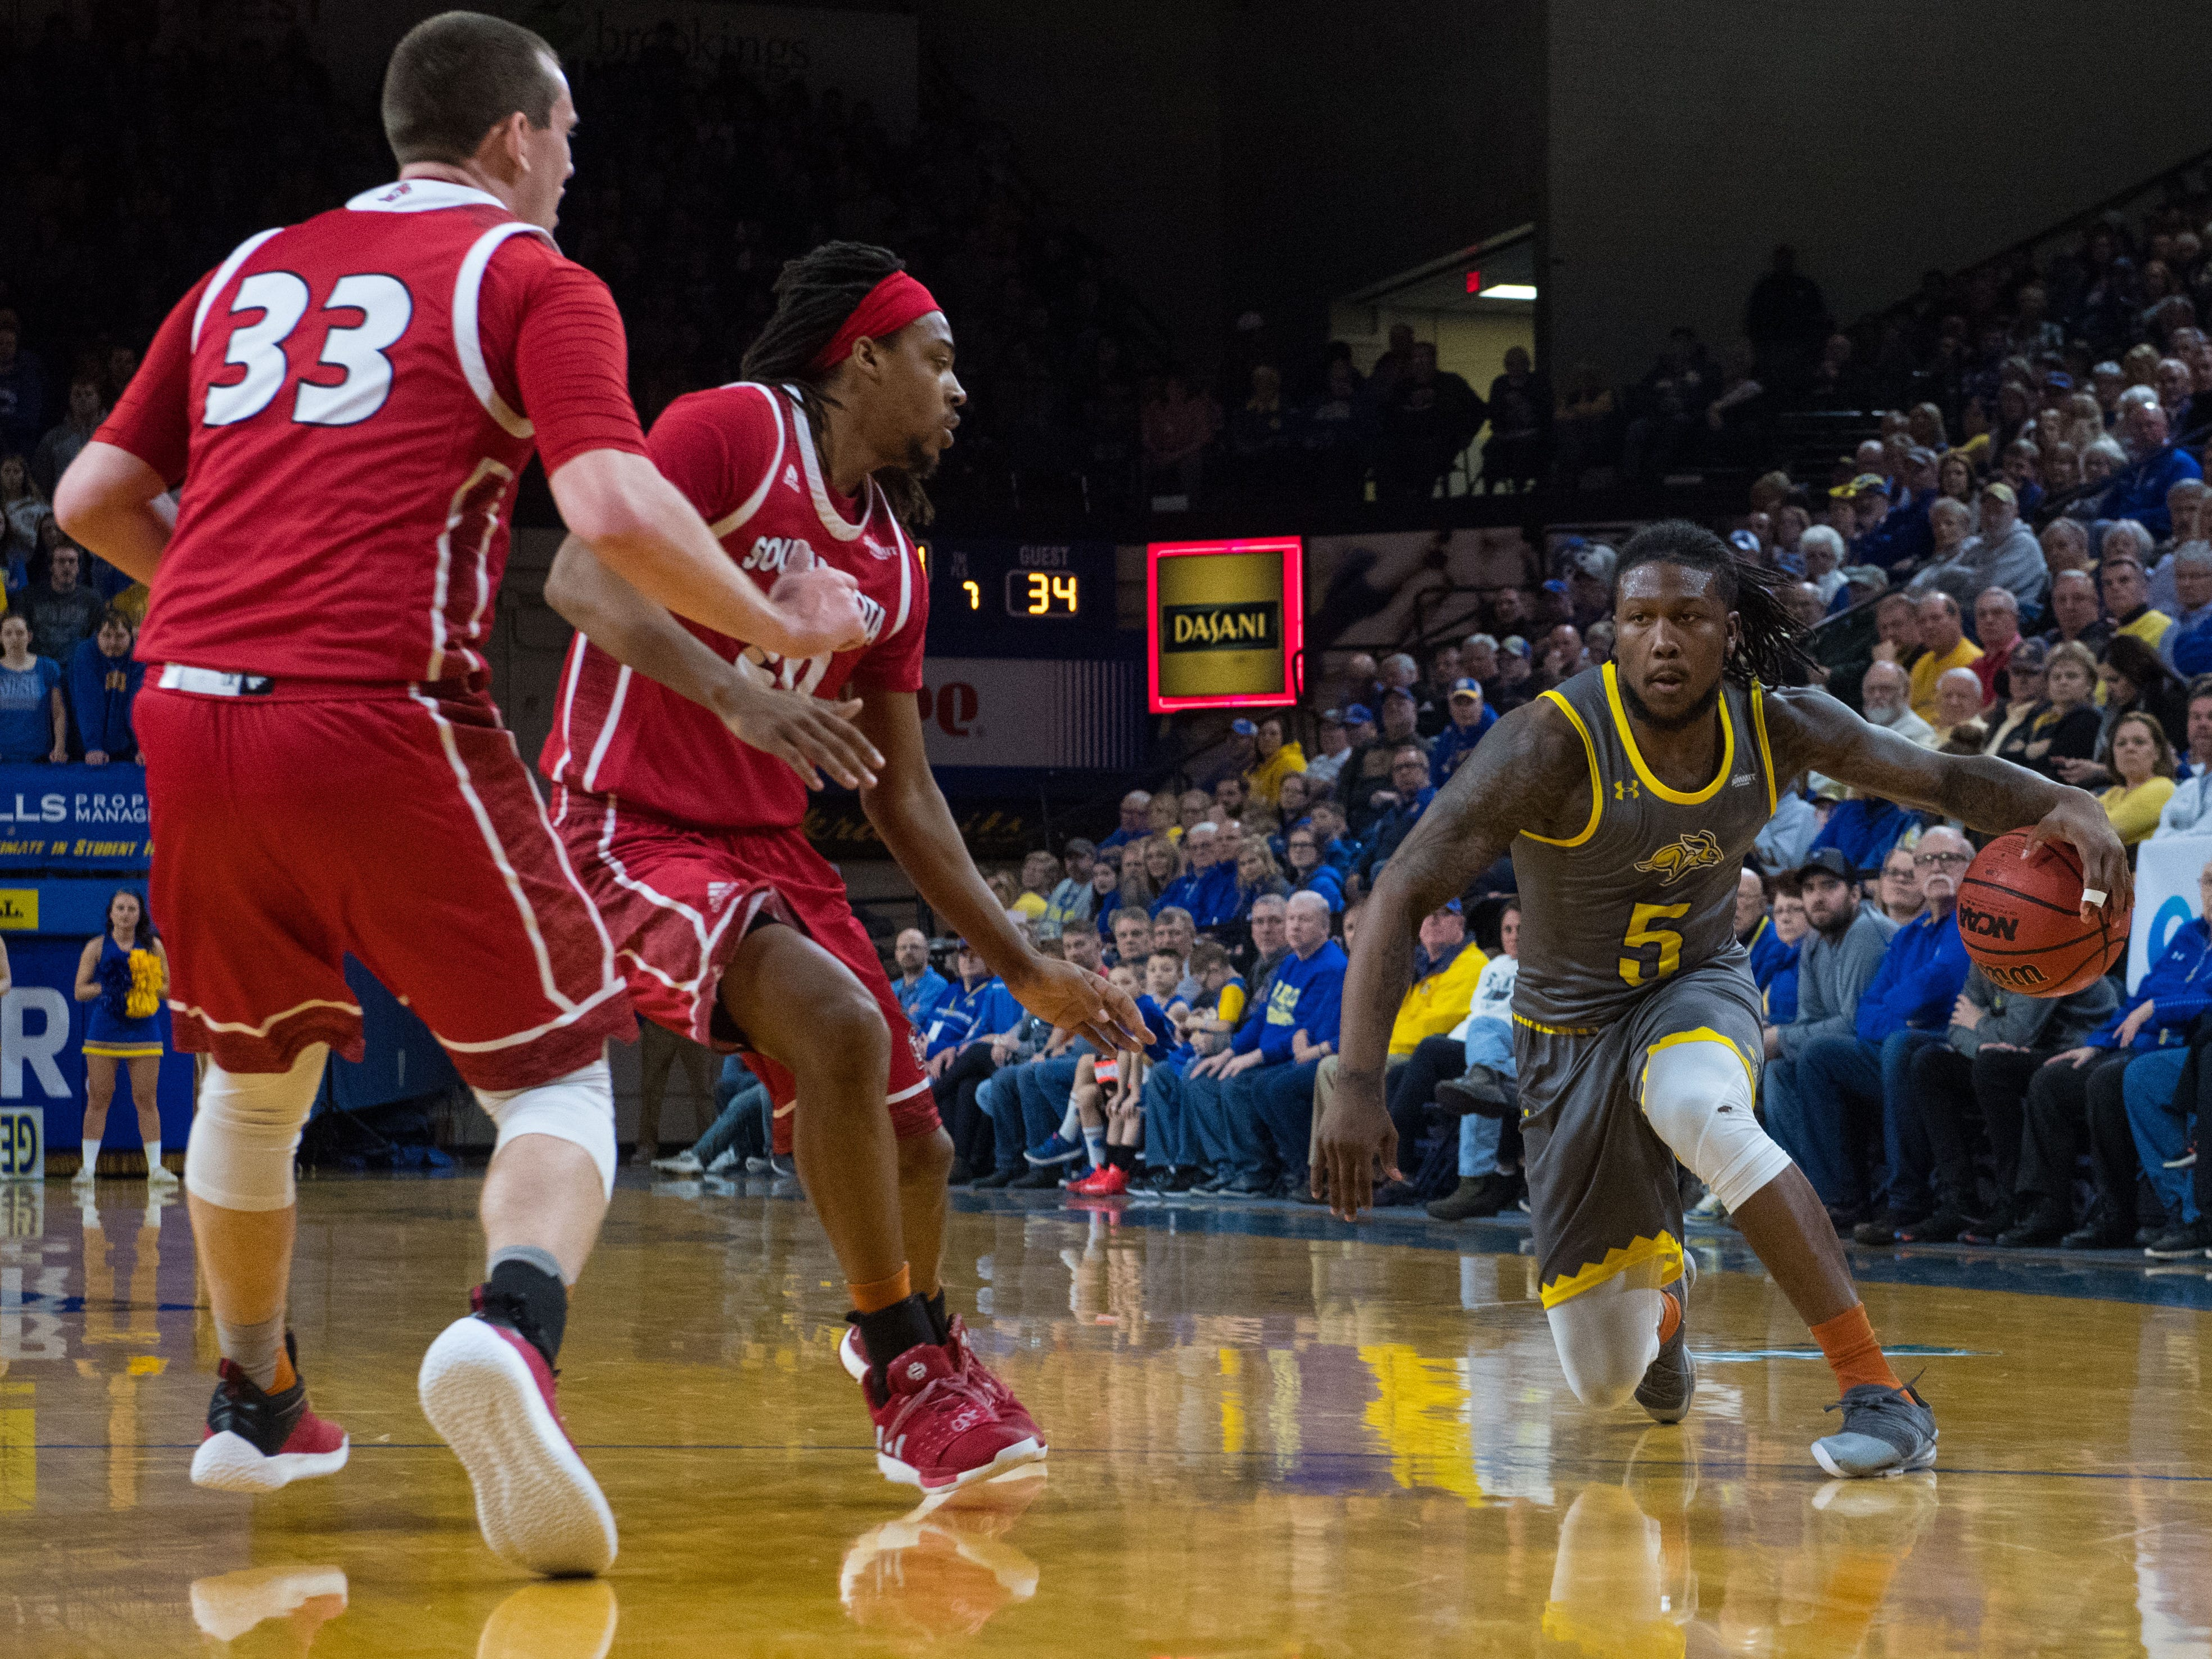 SDSU's David Jenkins Jr. (5) dribbles the ball past USD players during a game, Saturday, Feb. 23, 2019 in Brookings, S.D.